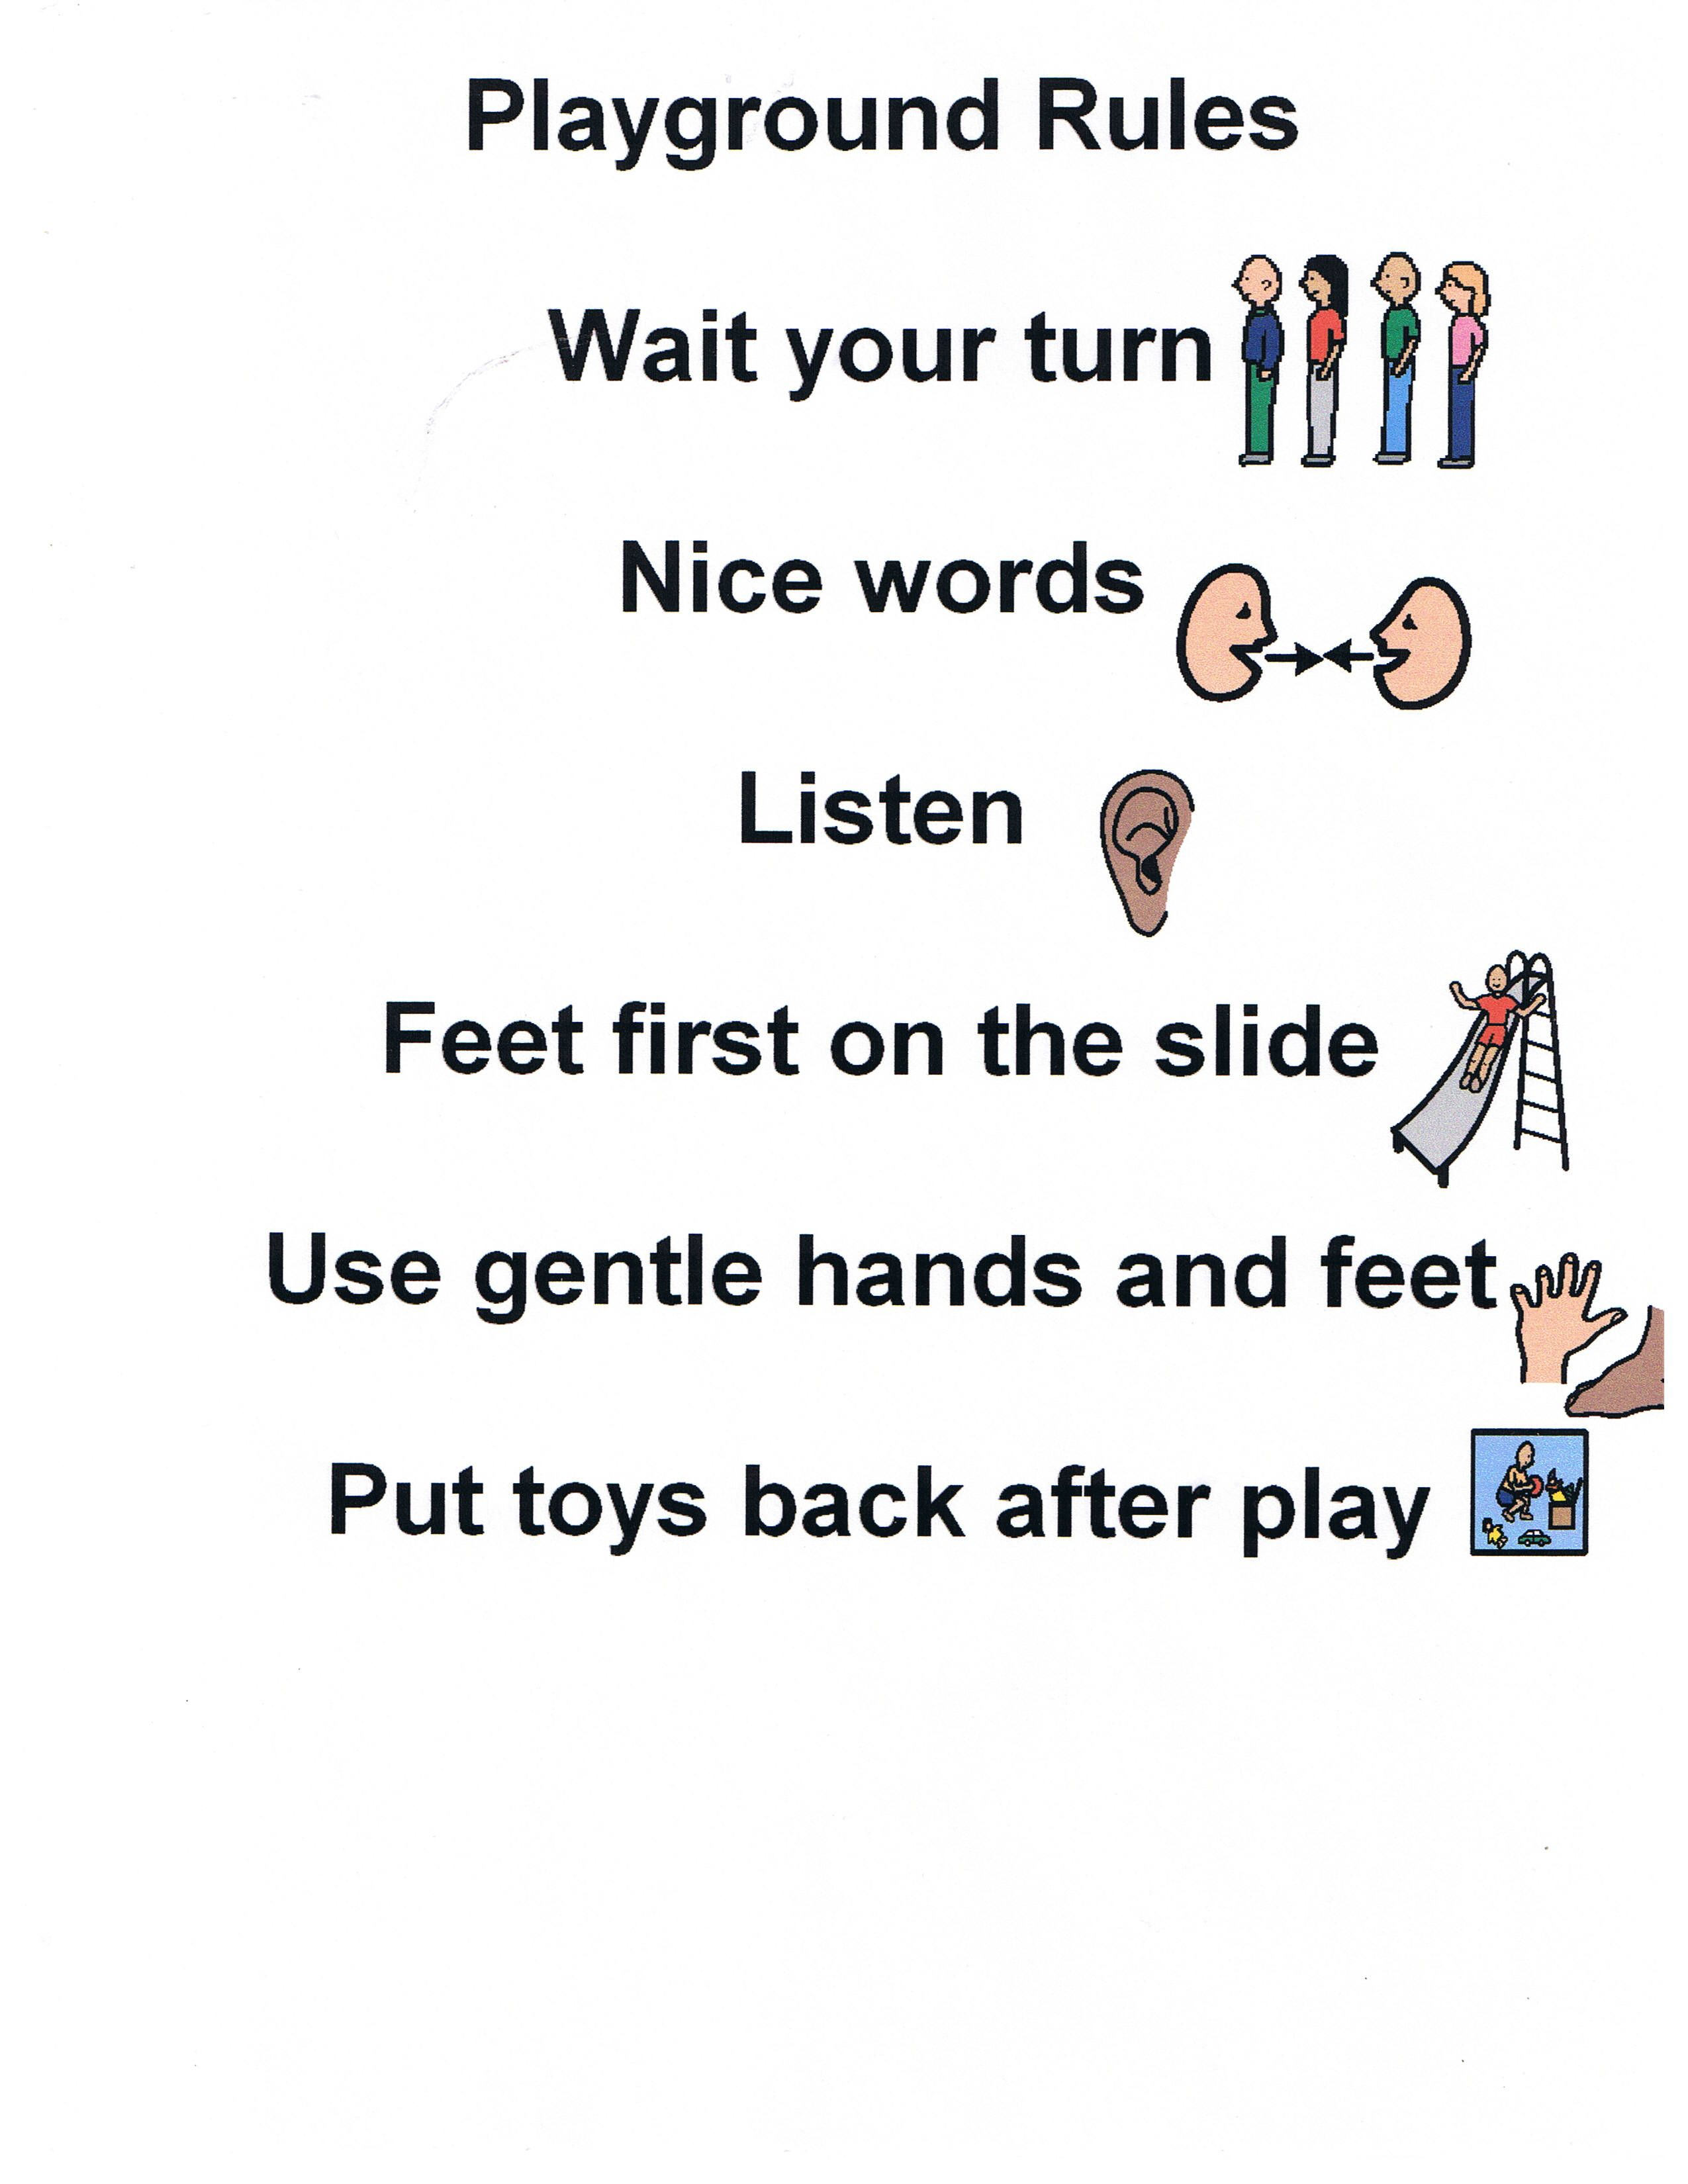 Manage Recess And Develop Children S Skills Without Them Even Knowing Playground Rules Preschool Rules Classroom Charts [ 3300 x 2550 Pixel ]